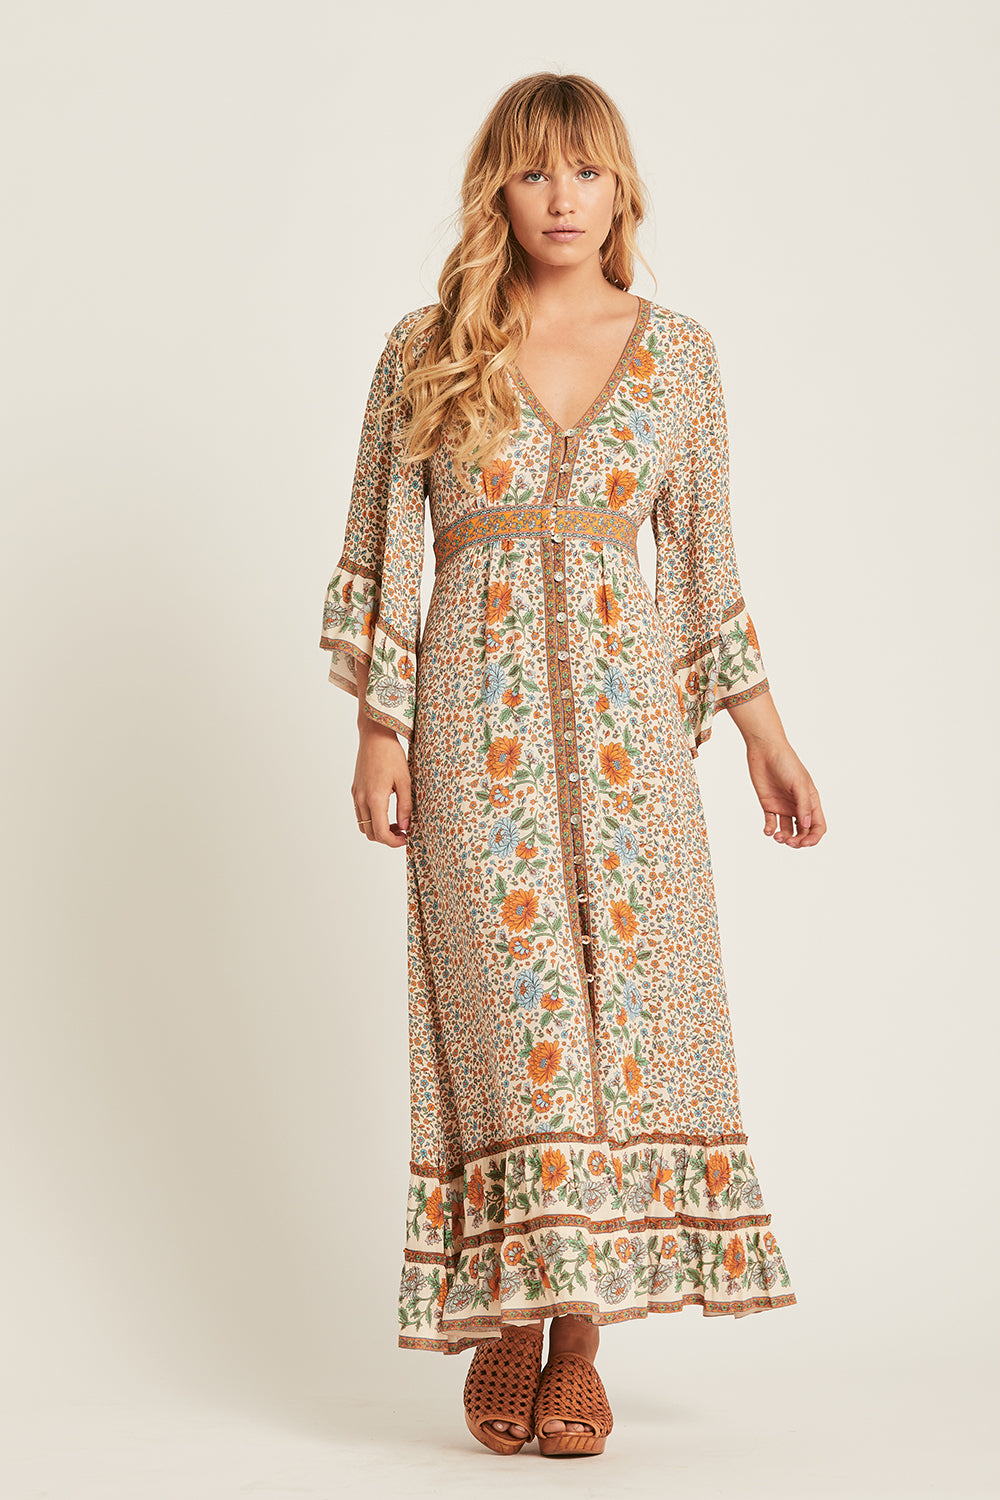 Ophelia Maxi Dress in Tango